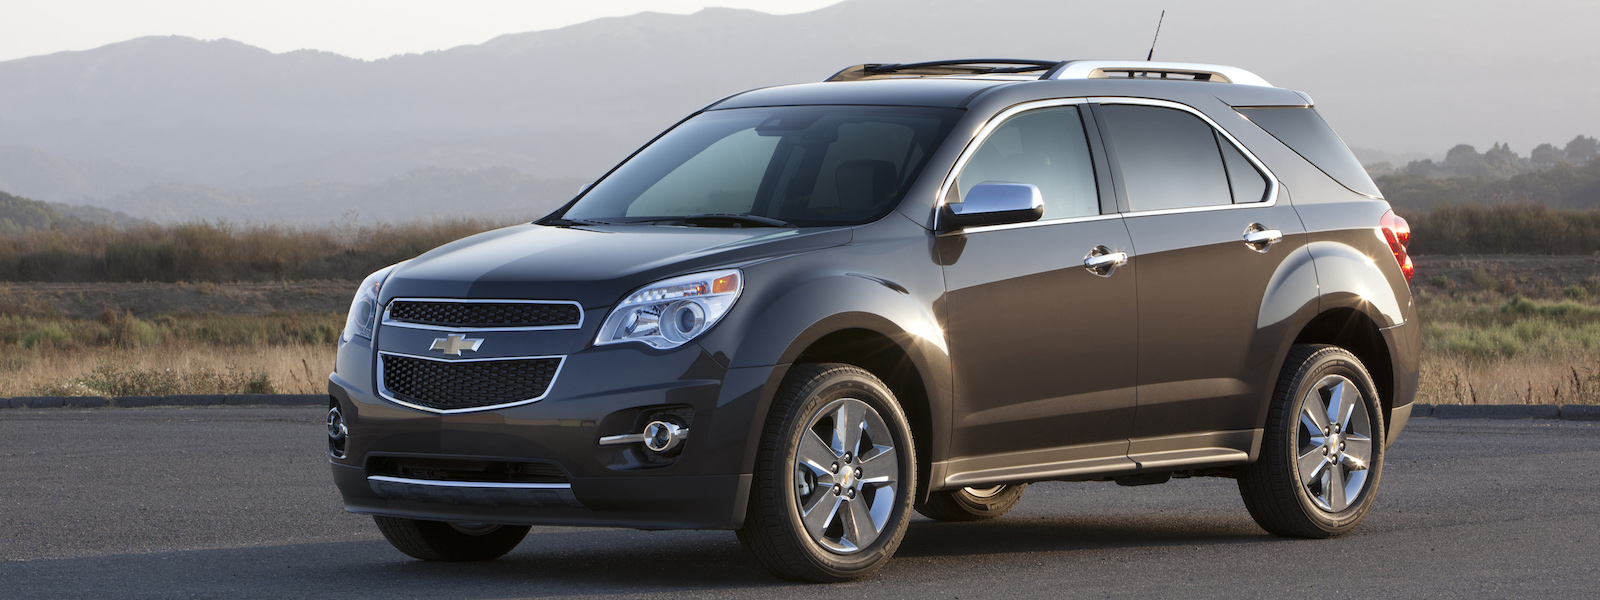 Chevy Equinox Favorites